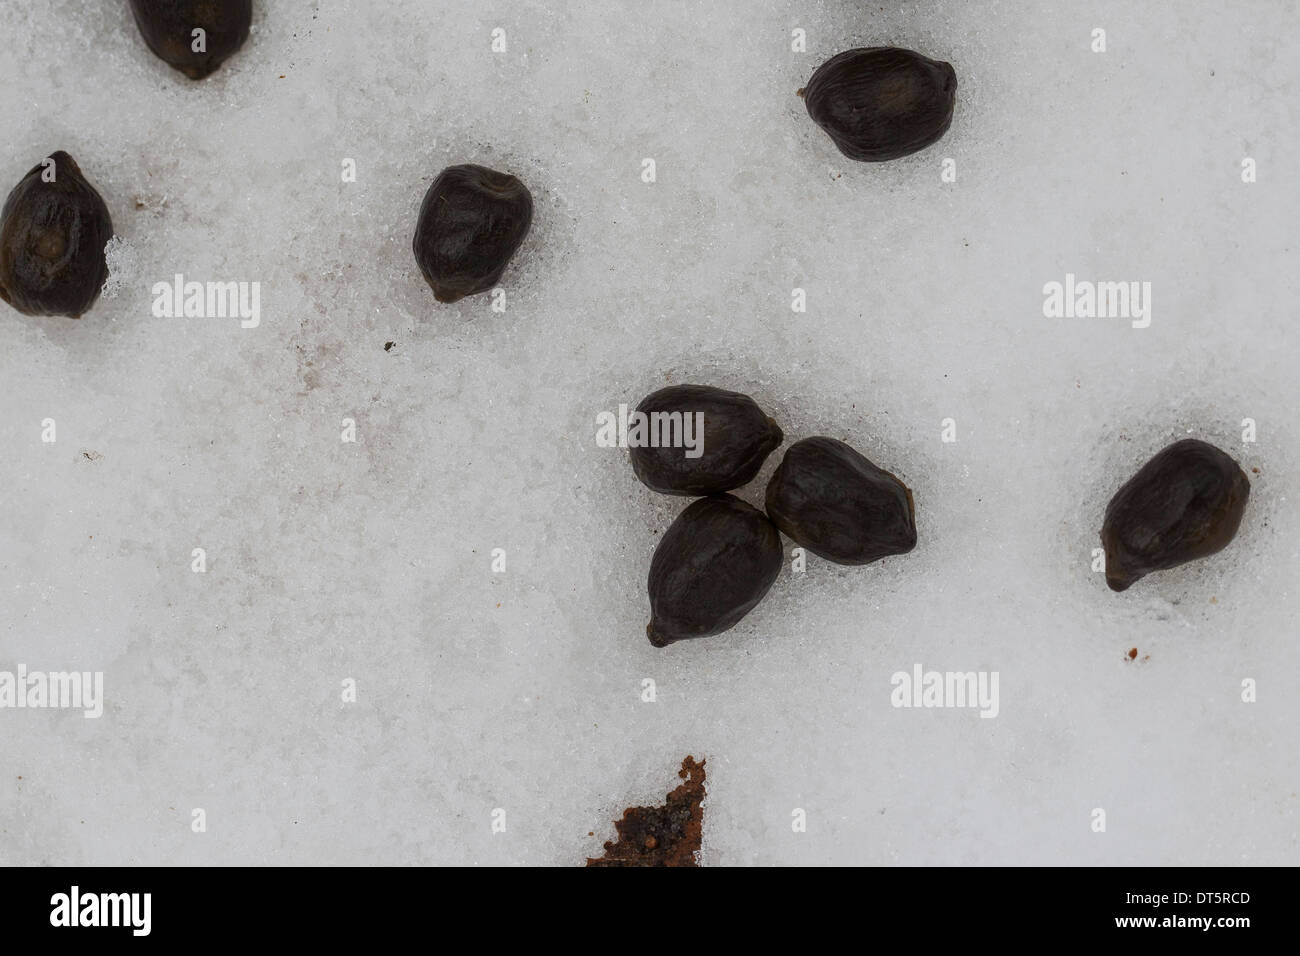 fallow deer daim droppings in winter snow losung vom damwild kot stock photo 66510989 alamy. Black Bedroom Furniture Sets. Home Design Ideas